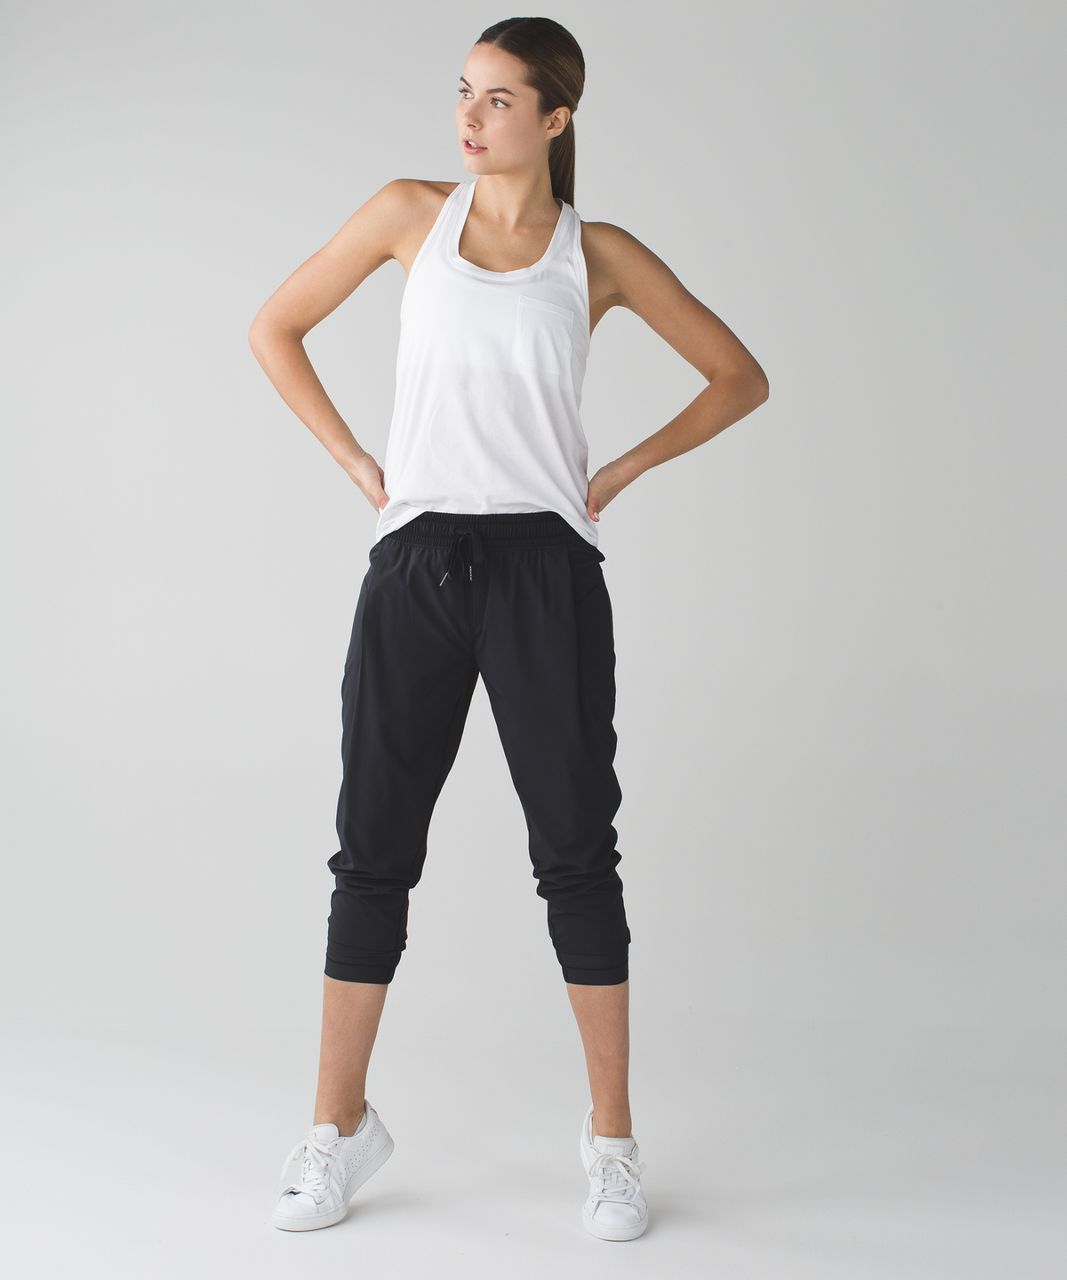 Lululemon Stretch It Out Crop - Black